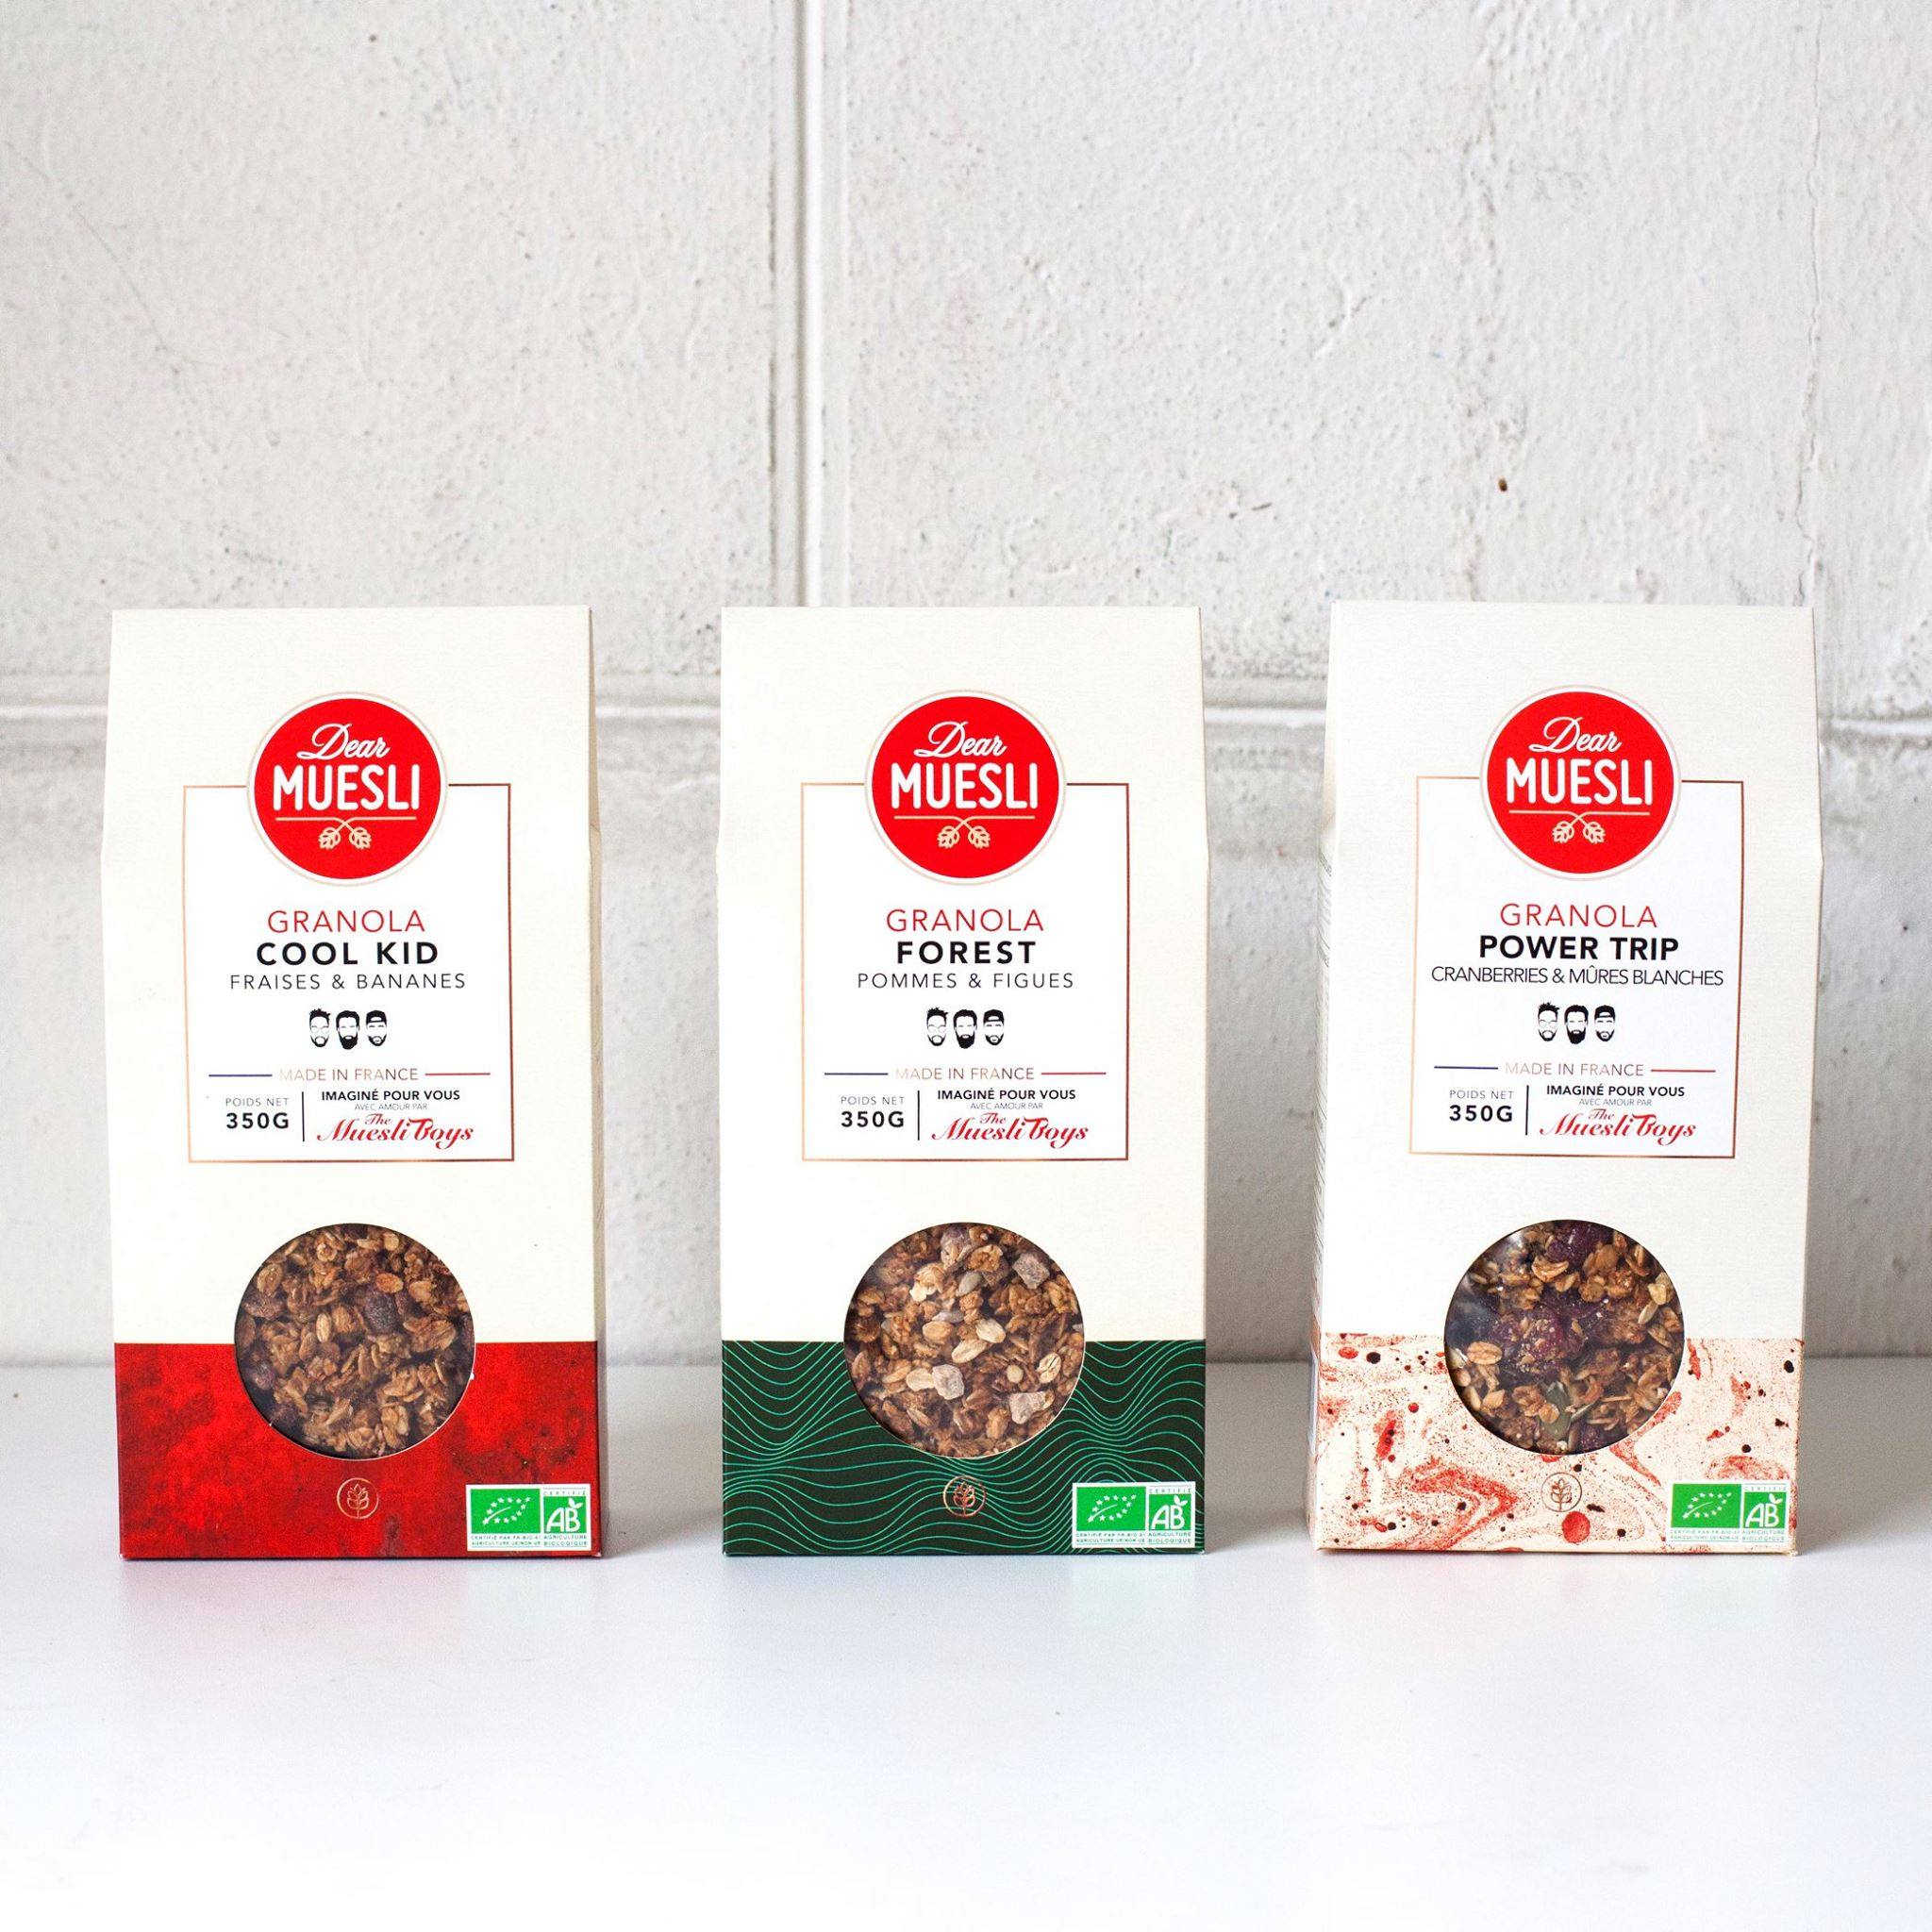 Dear Muesli un petit déjeuner sain sans sucre présenté sur supernutrition